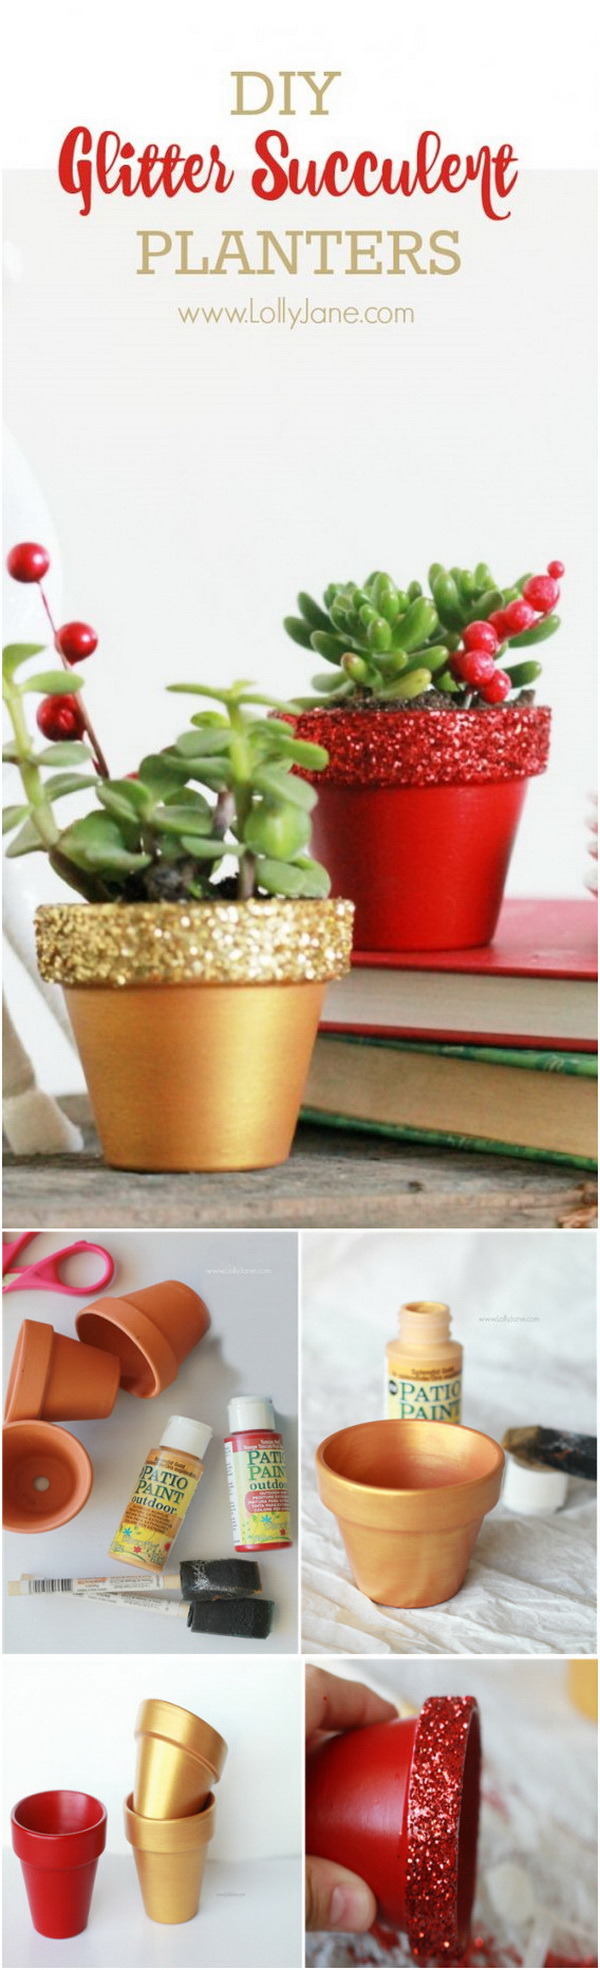 DIY Glitter Succulent Planters. These glitter succulent planters are easy and fun to make even for your kids. They make a great gift for Christmas or other holiday!